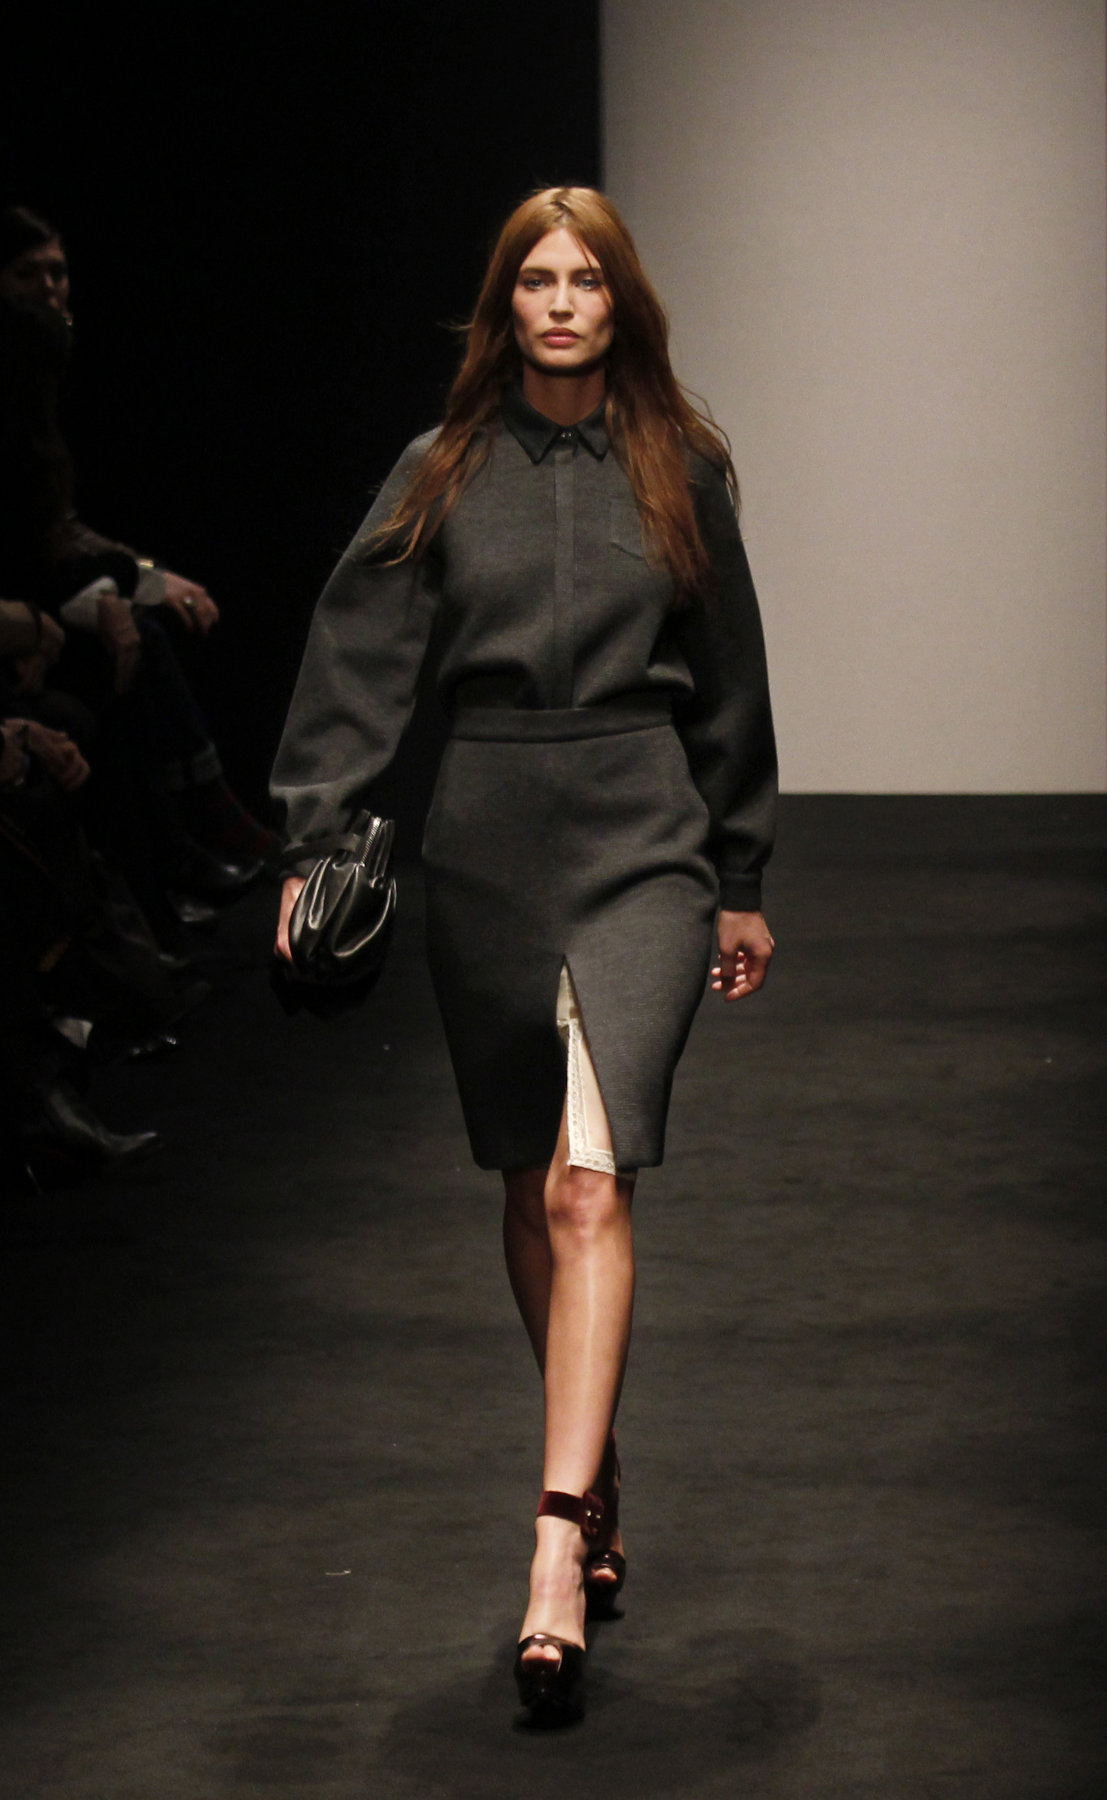 N21 Alessandro Dell'Acqua Fall-Winter 2012 Women's Collection